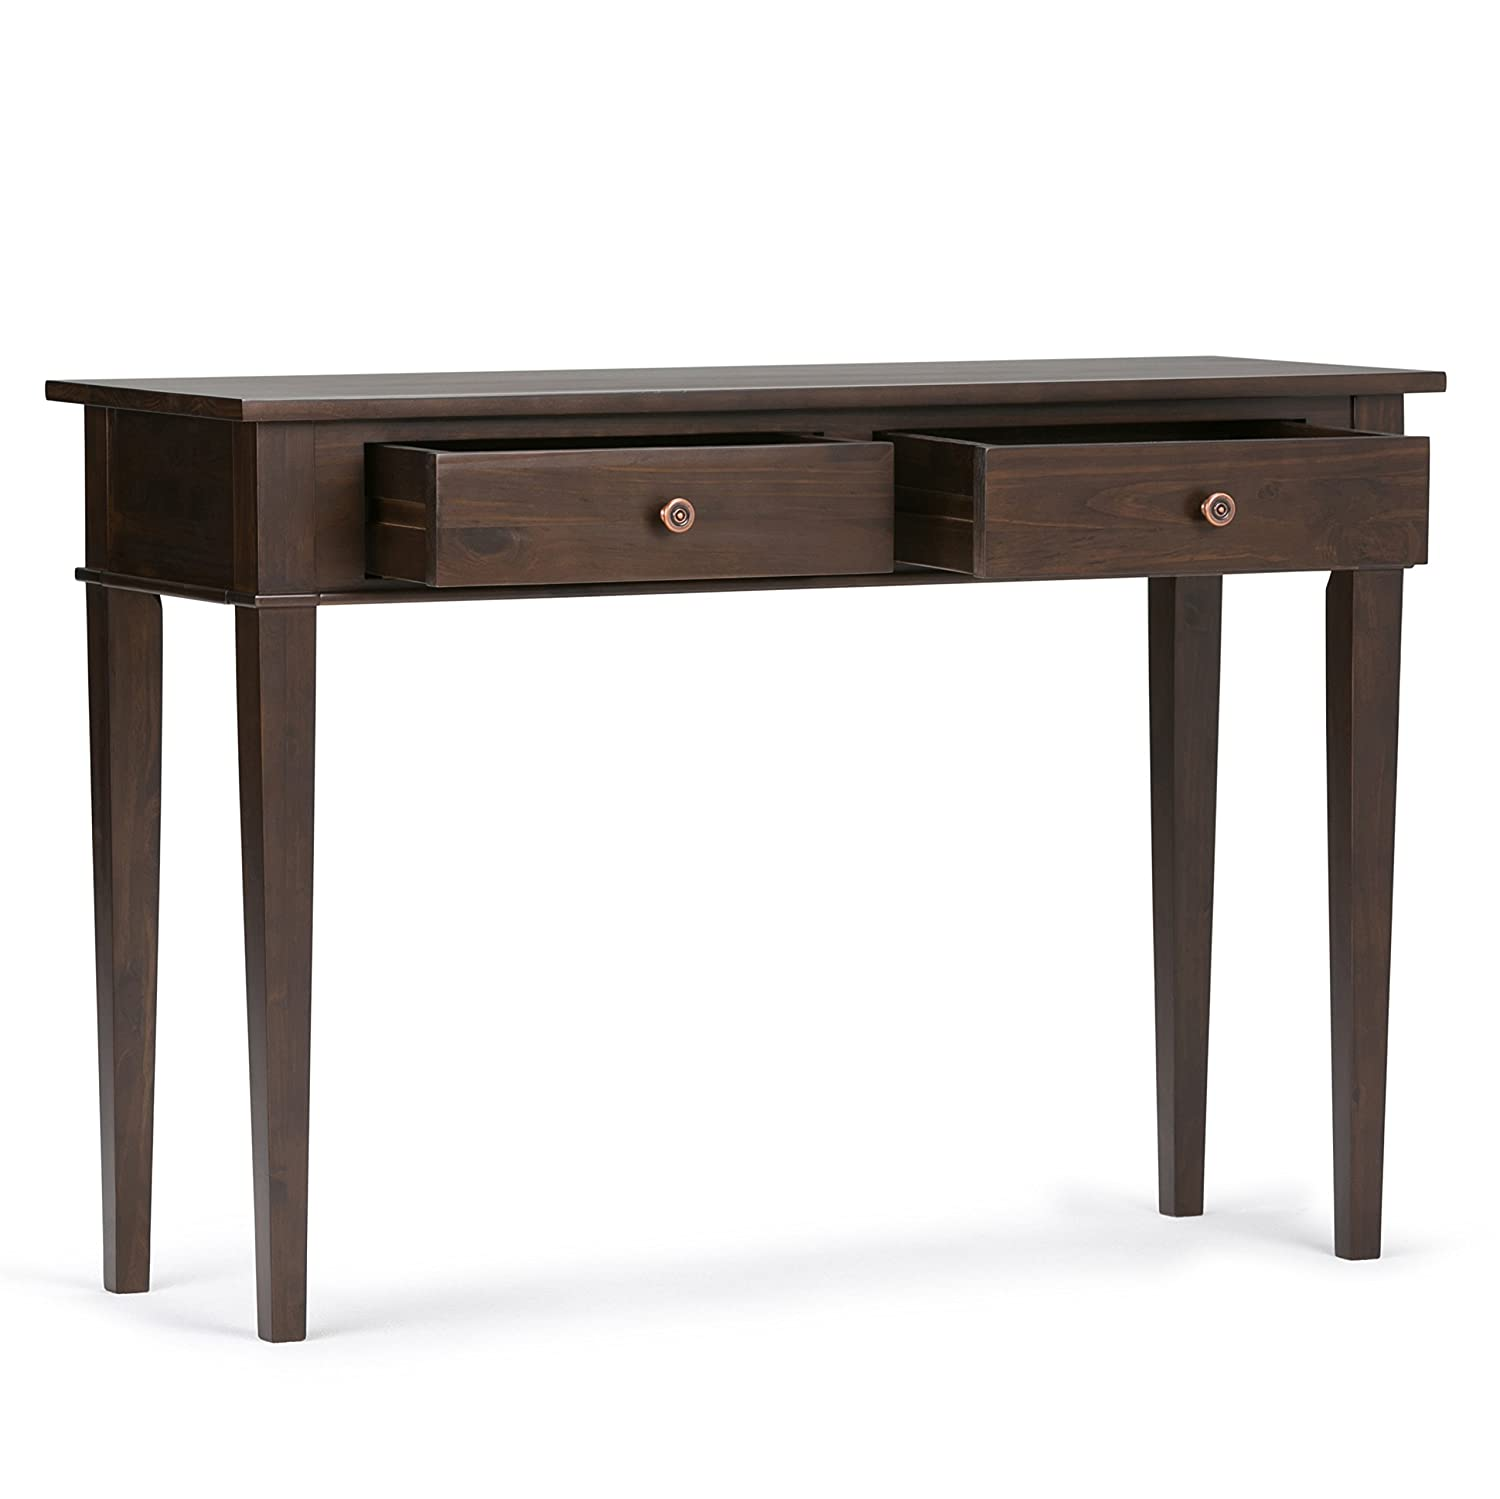 Simpli Home 3AXCCRL-02 Carlton Solid Wood 44 inch wide Contemporary Console Sofa Table in Tobacco Brown